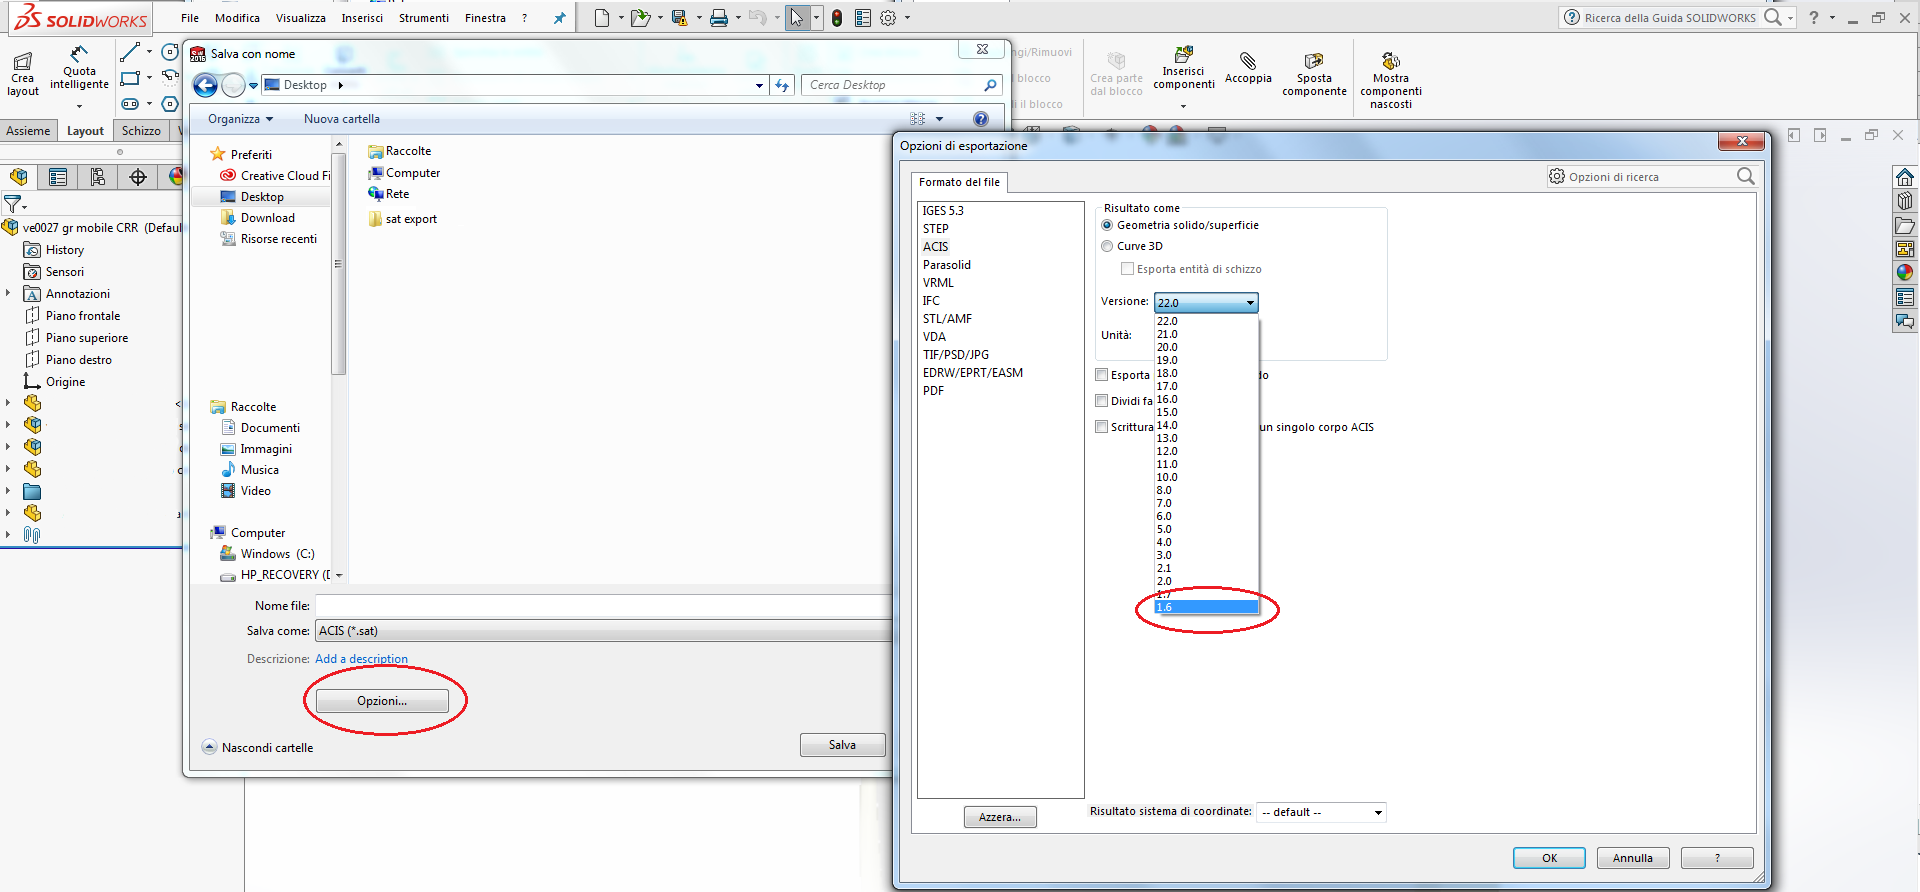 Importing From Solidworks To Revit Autodesk Community - Solidworks electrical schematic serial number